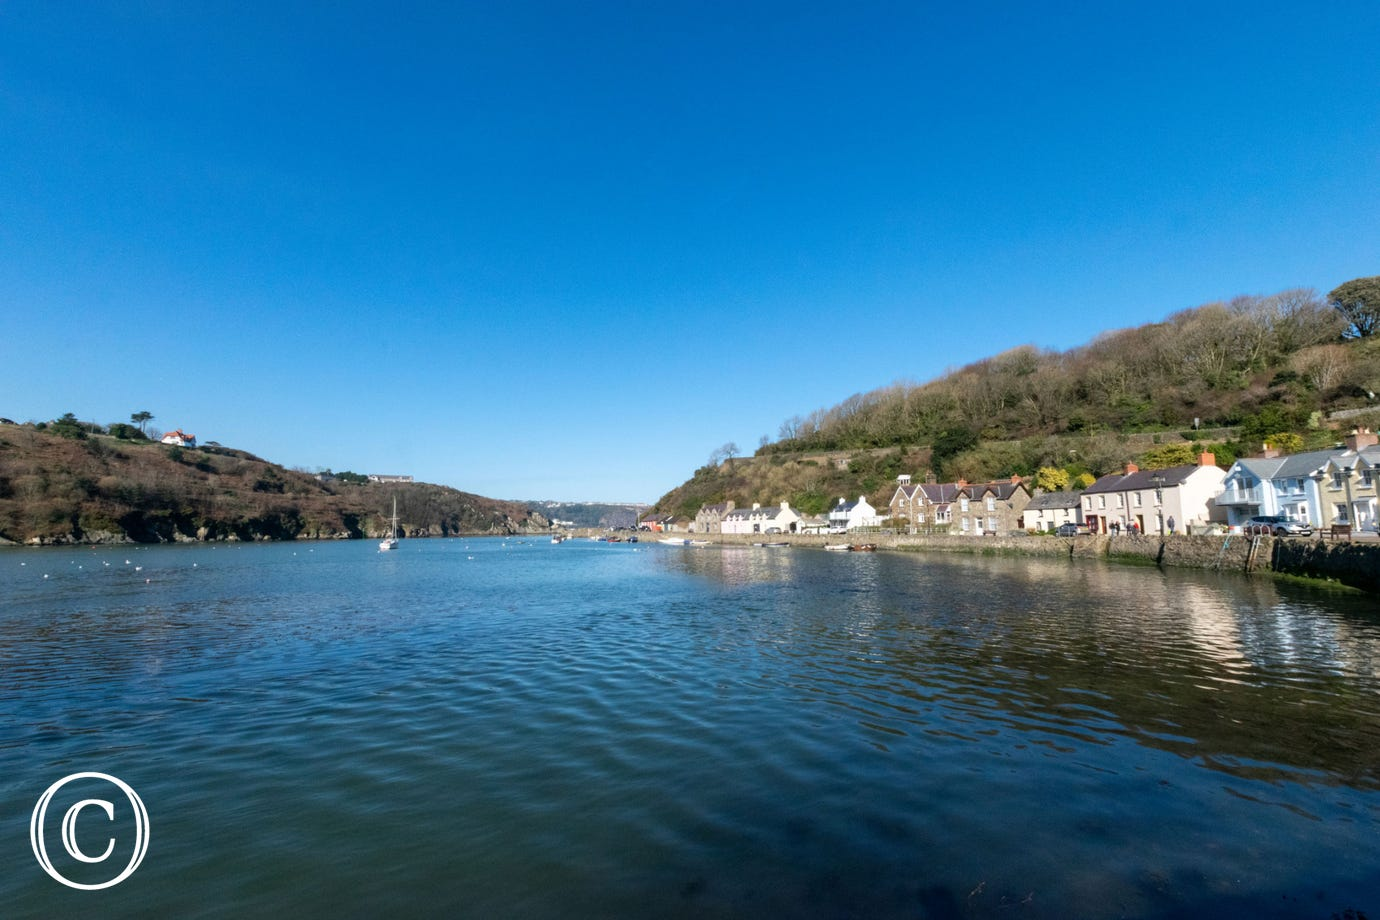 The lower town quayside in Fishguard